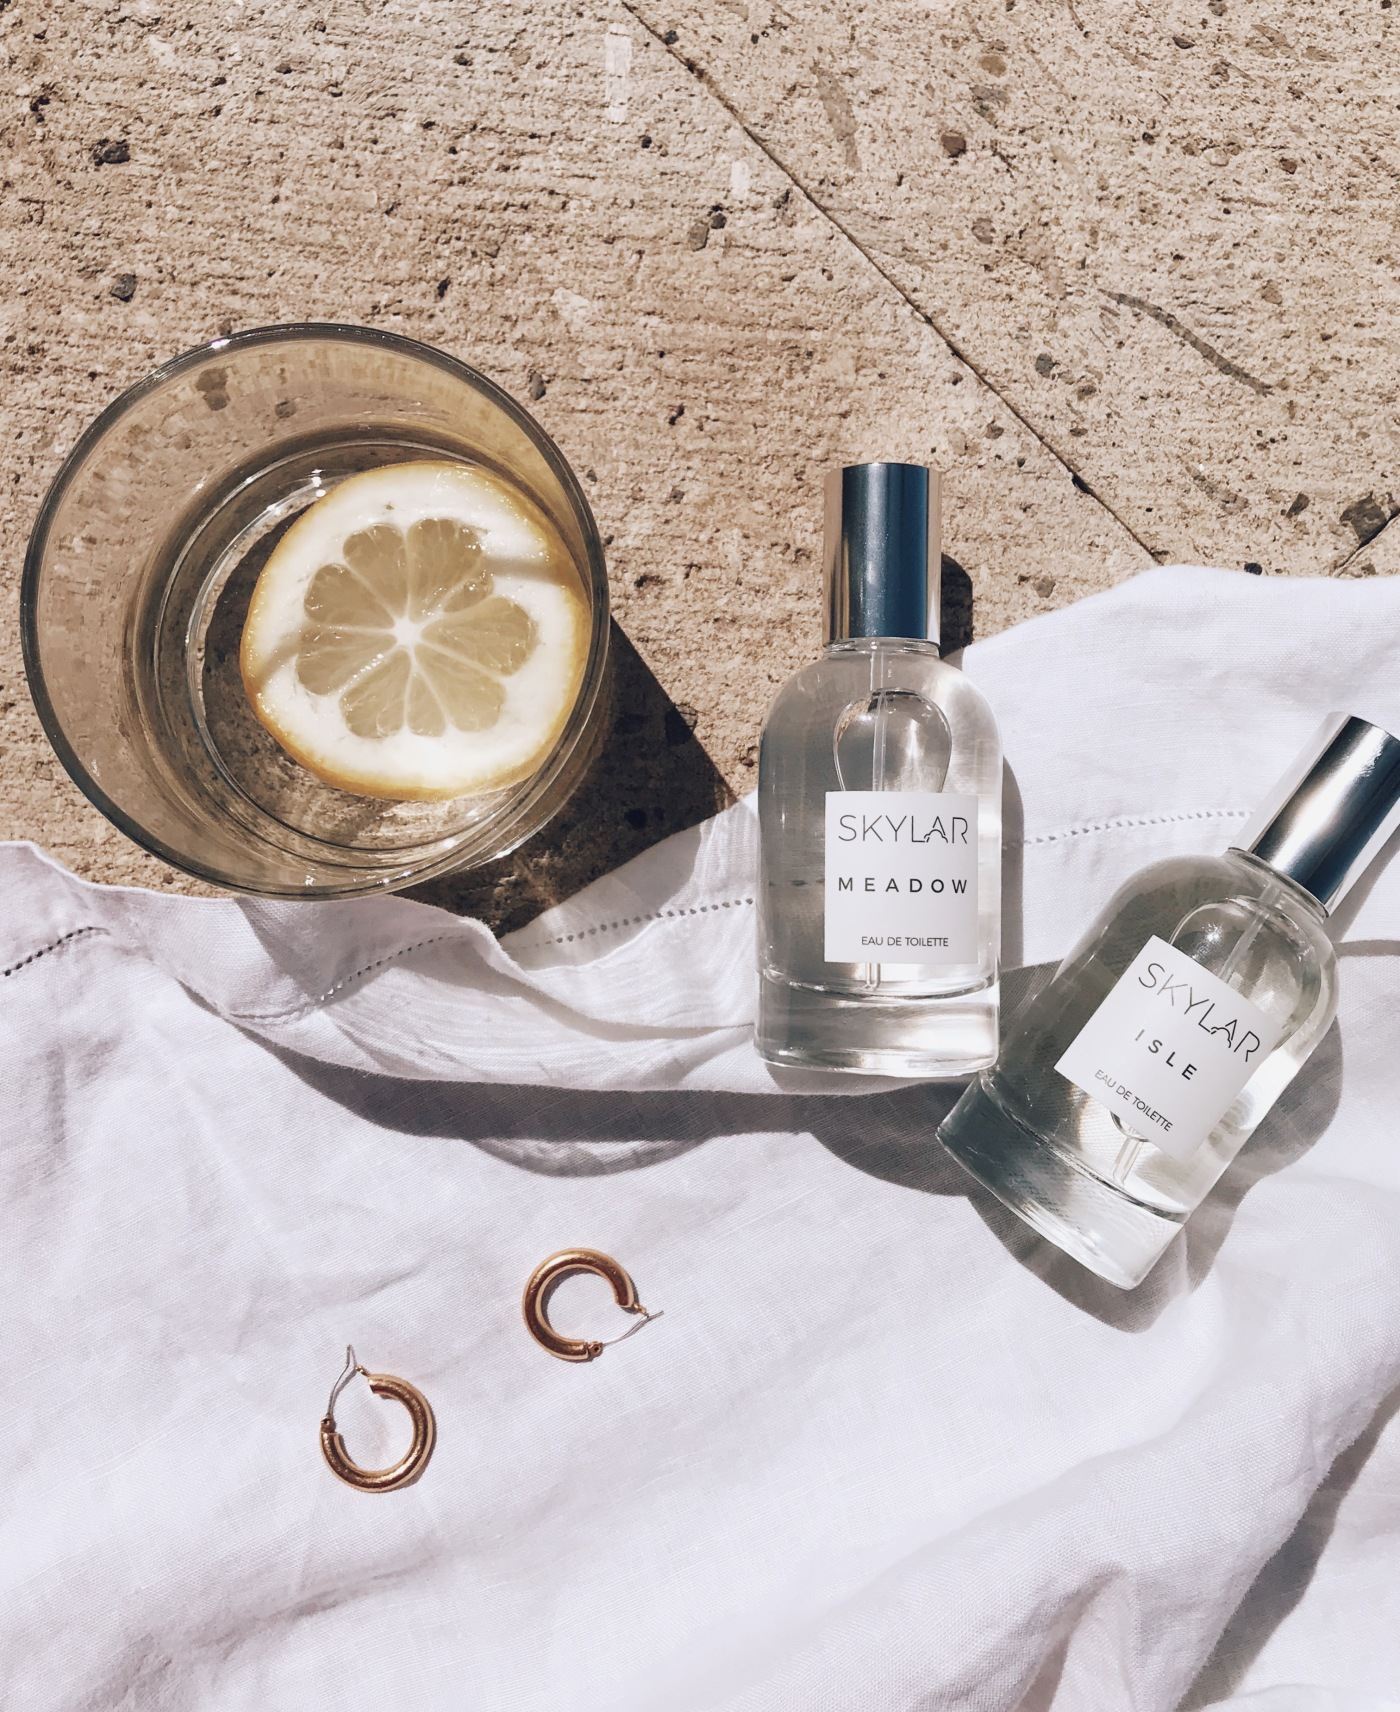 This Non-Toxic, Vegan Fragrance Smells Just Like An Amalfi Coast Summer